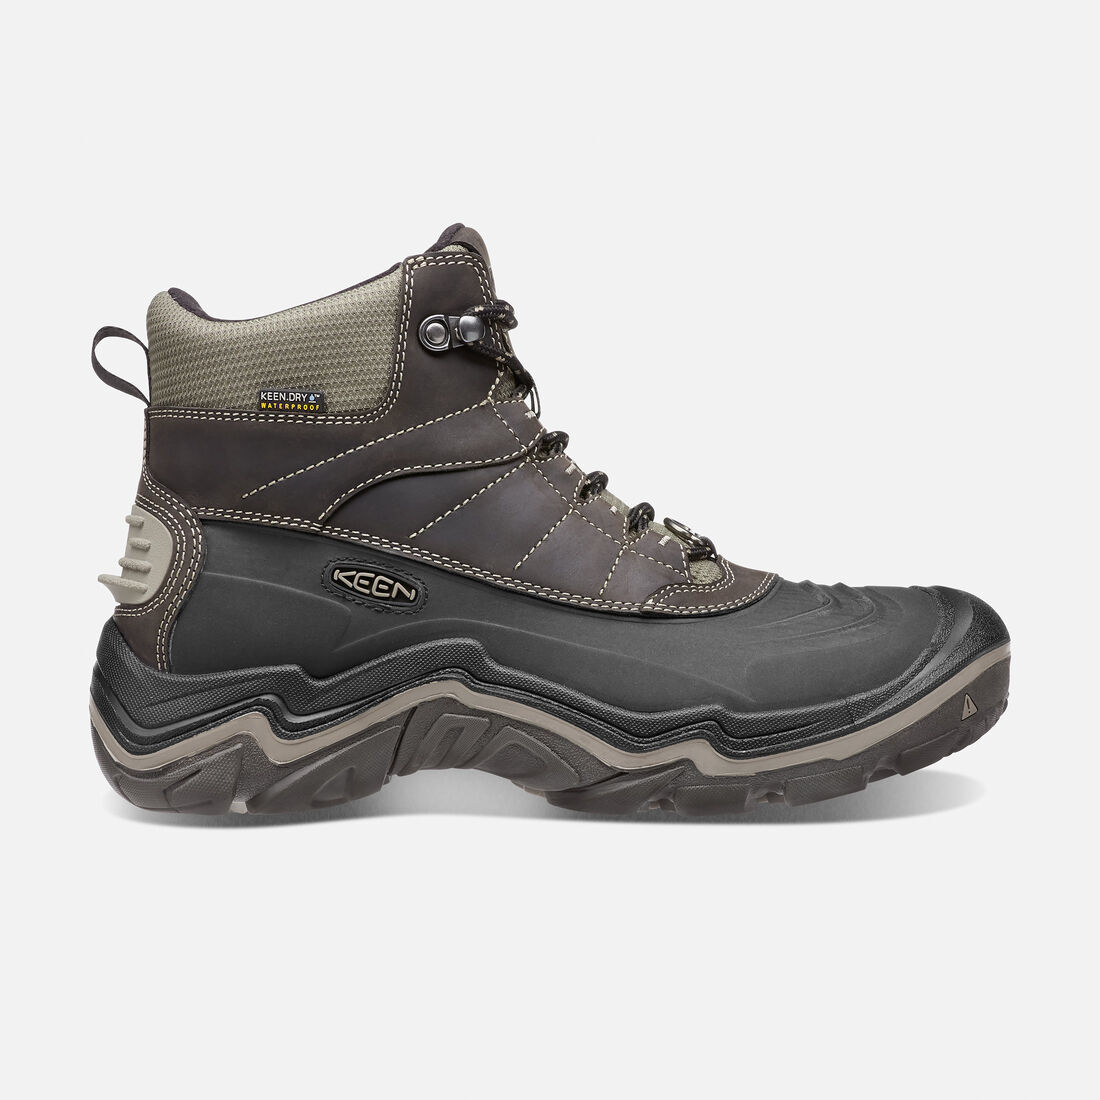 Men's Durand Polar Shell in Black Olive/Brindle - large view.